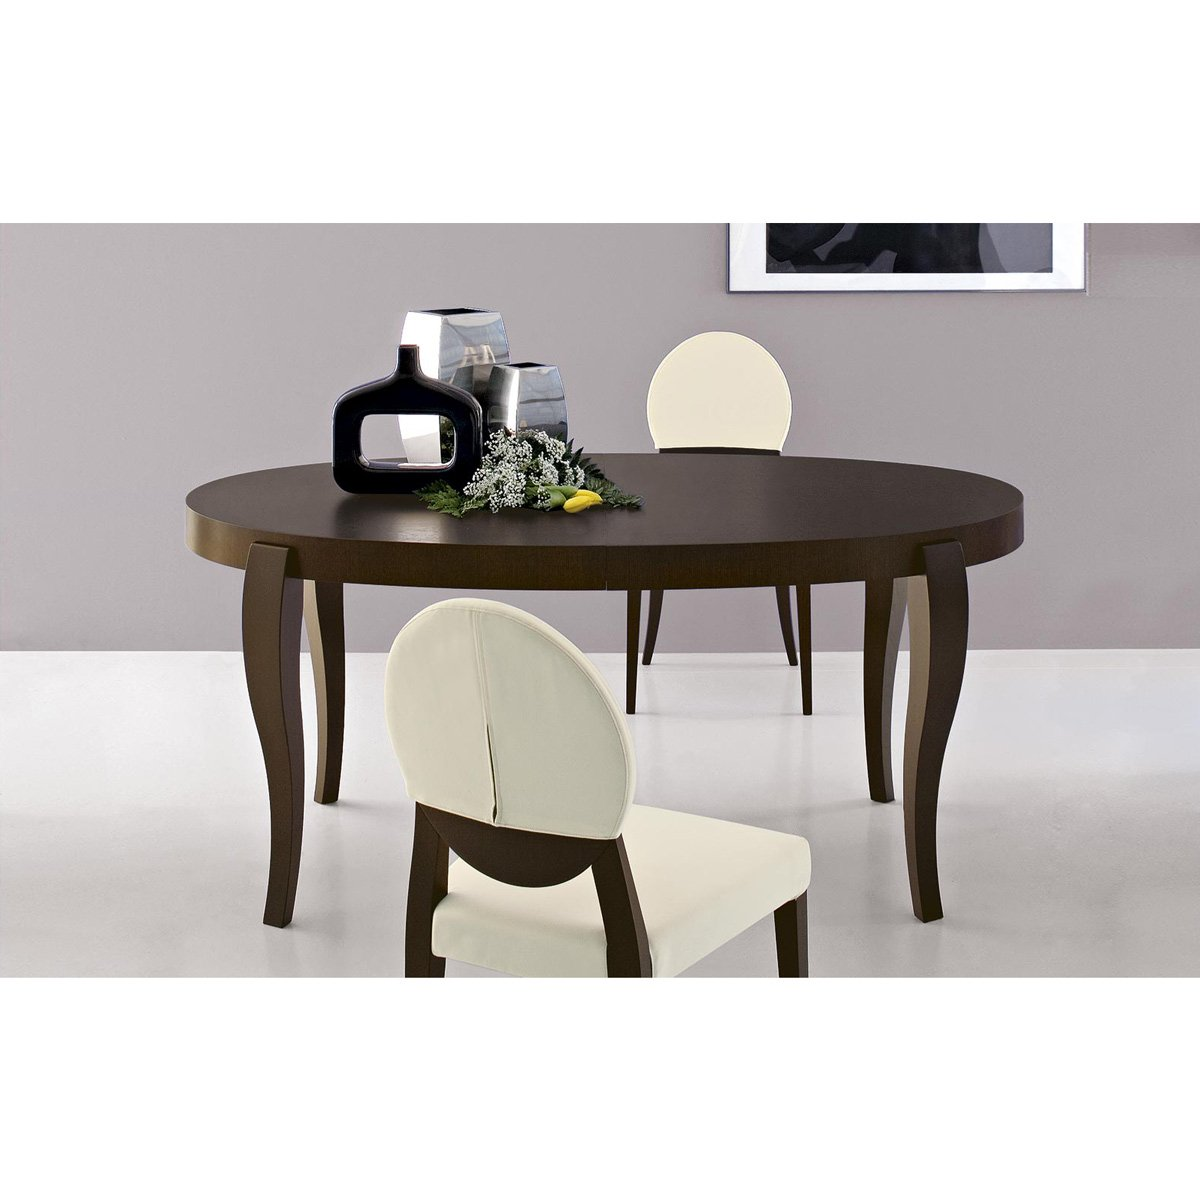 table de repas extensible regency meubles et atmosph re. Black Bedroom Furniture Sets. Home Design Ideas